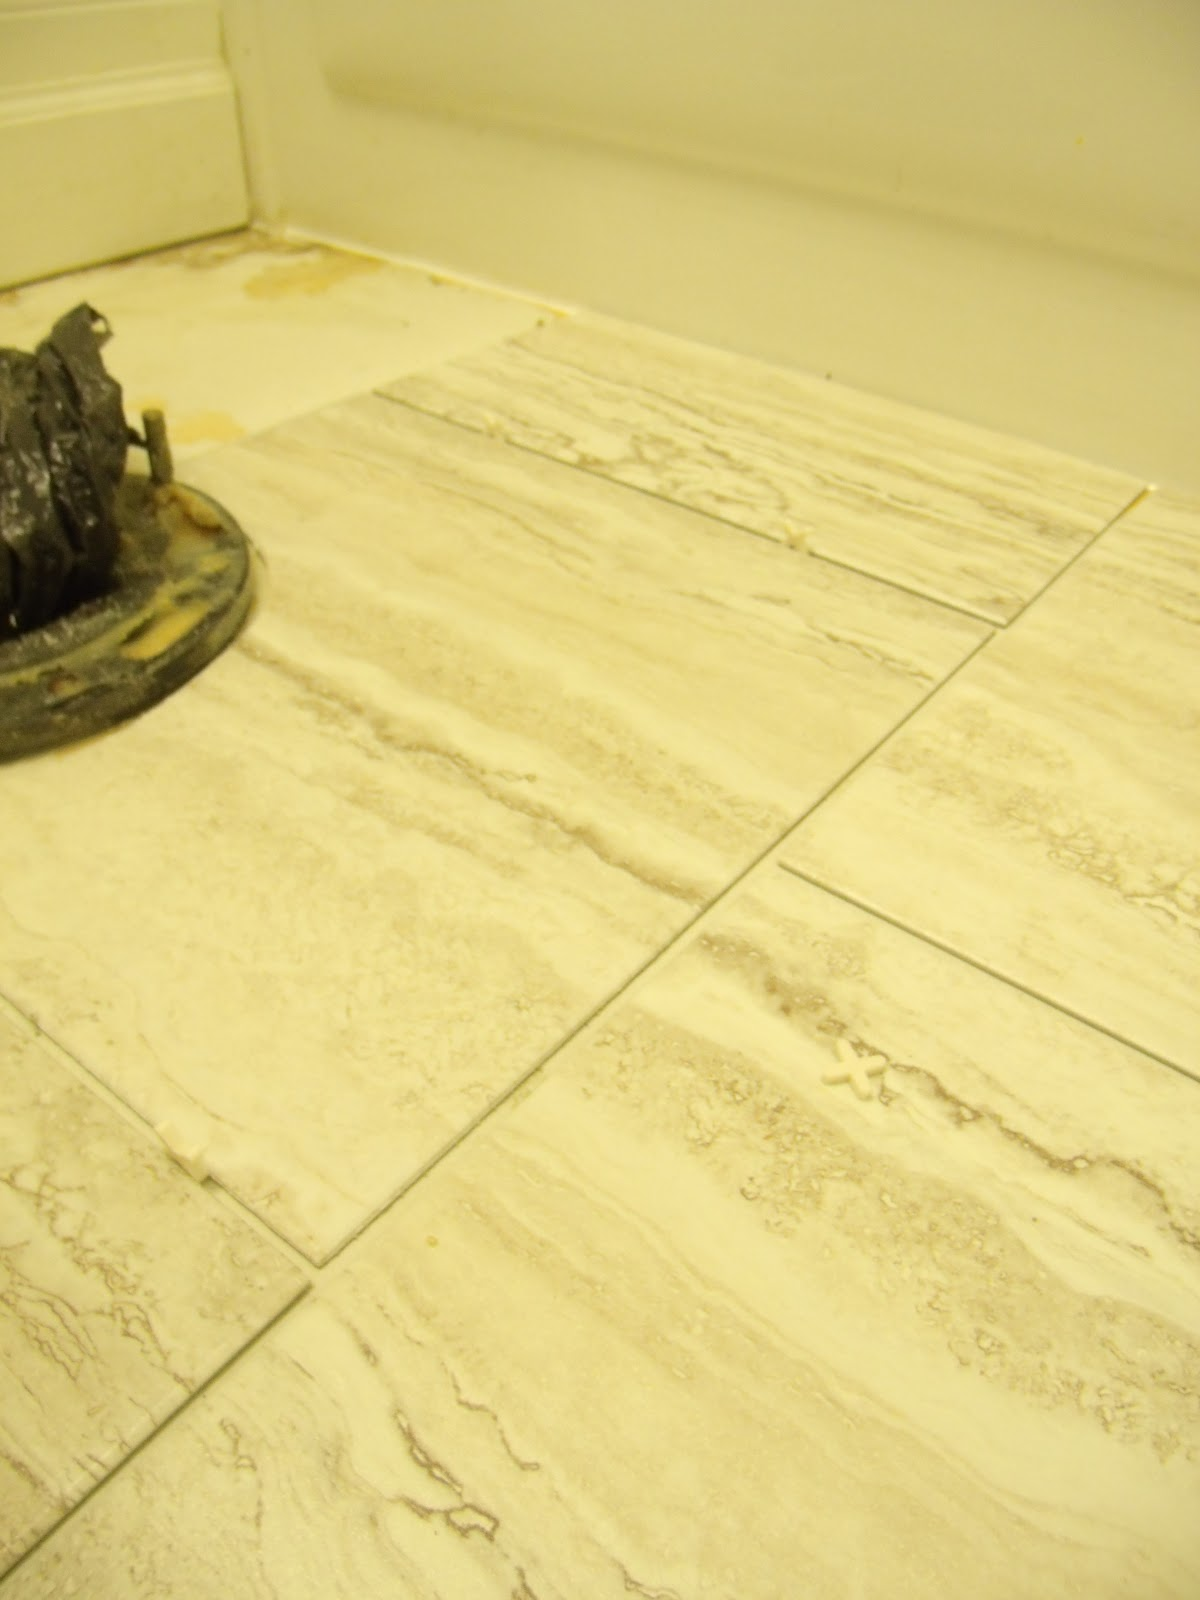 How to install peel and stick vinyl tile that you can grout how to install peel and stick vinyl tile that you can grout frugal family times dailygadgetfo Image collections